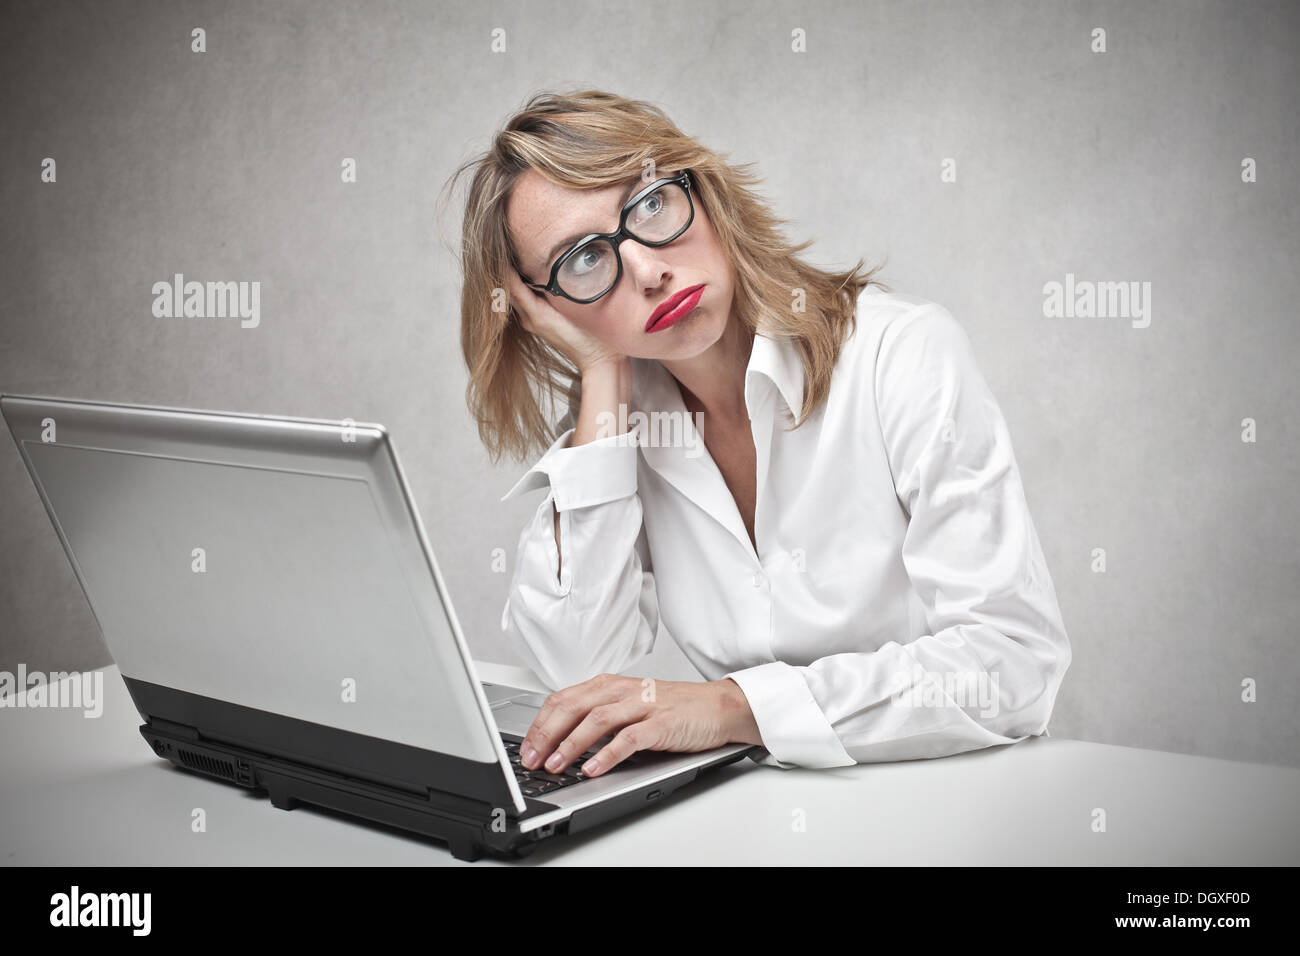 Bored blonde woman with glasses using a laptop - Stock Image